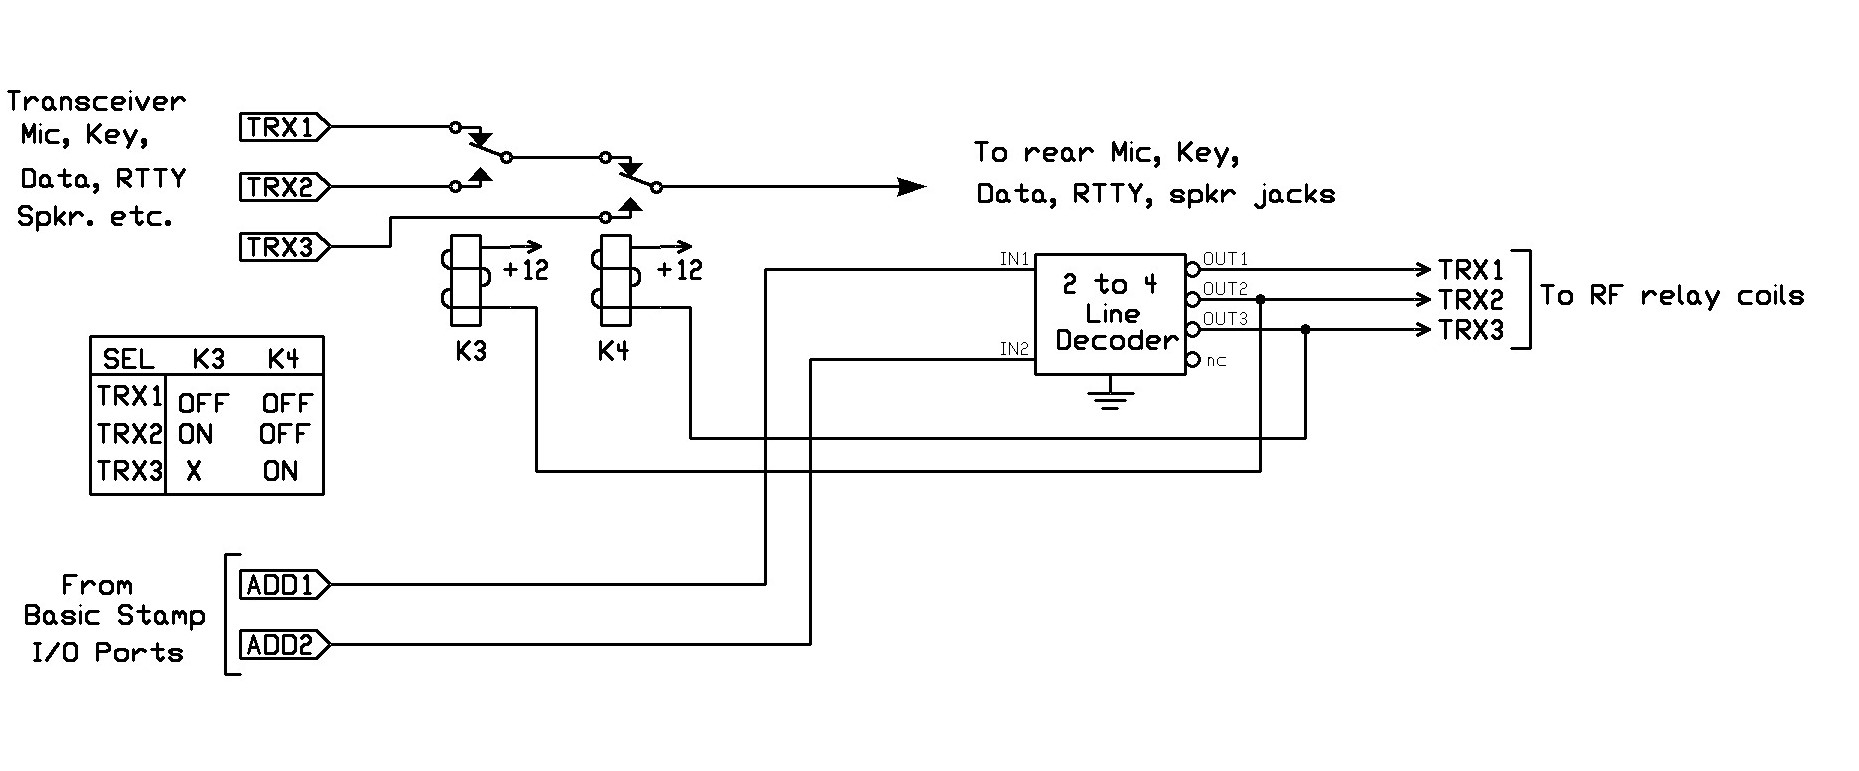 hight resolution of the above figure illustrates the simplified switching of the stationpro ii which allows independent selection of three transceiver exciters shown as trx1